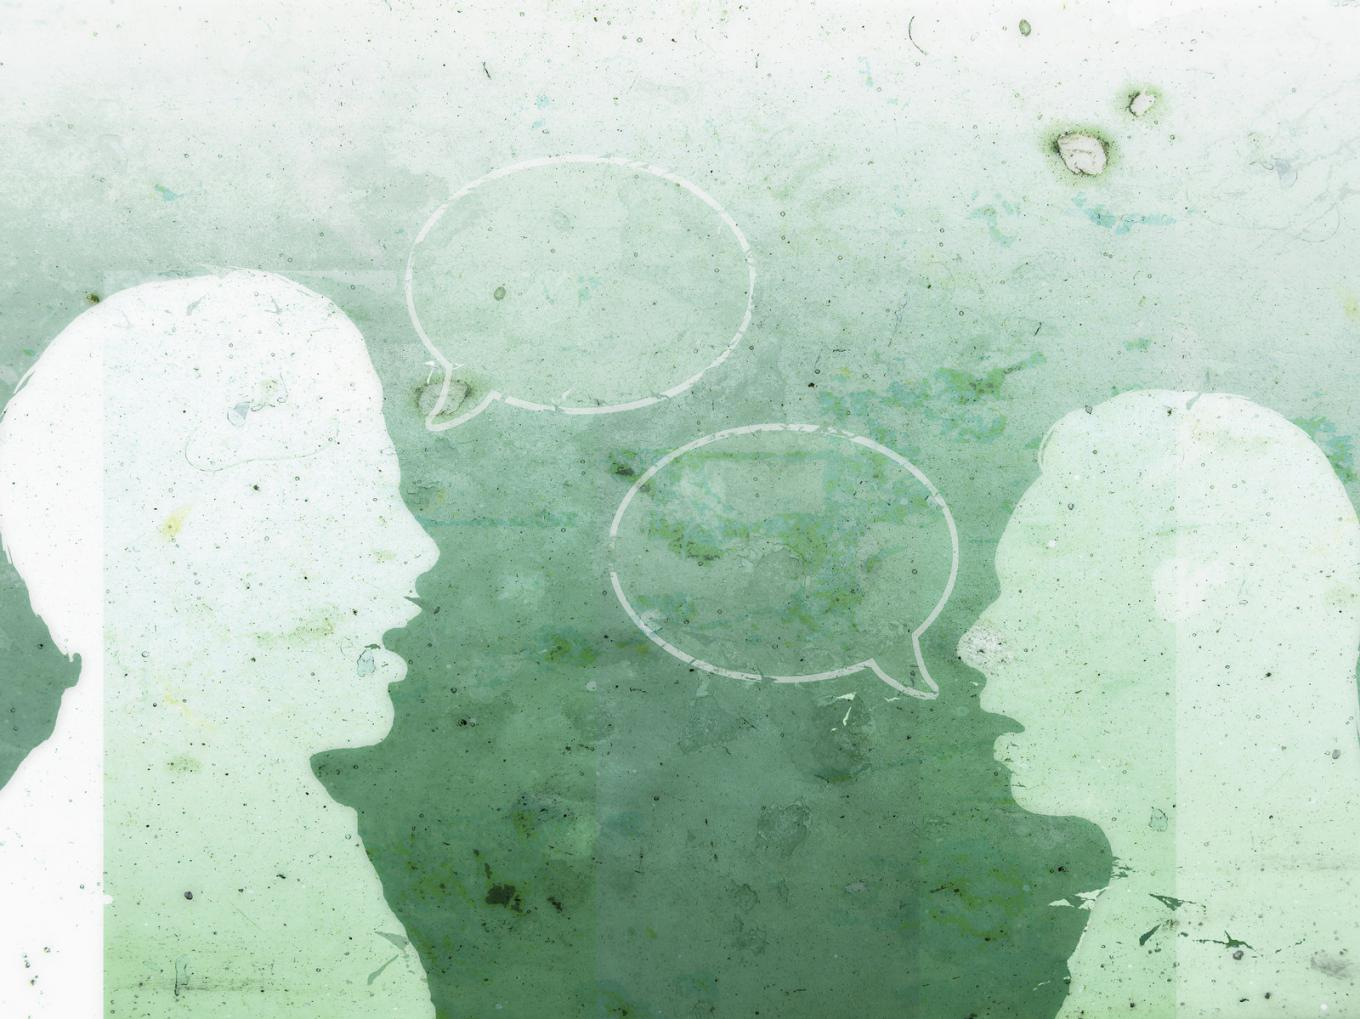 Silhouettes of two people in conversation, with empty speech bubbles floating between them